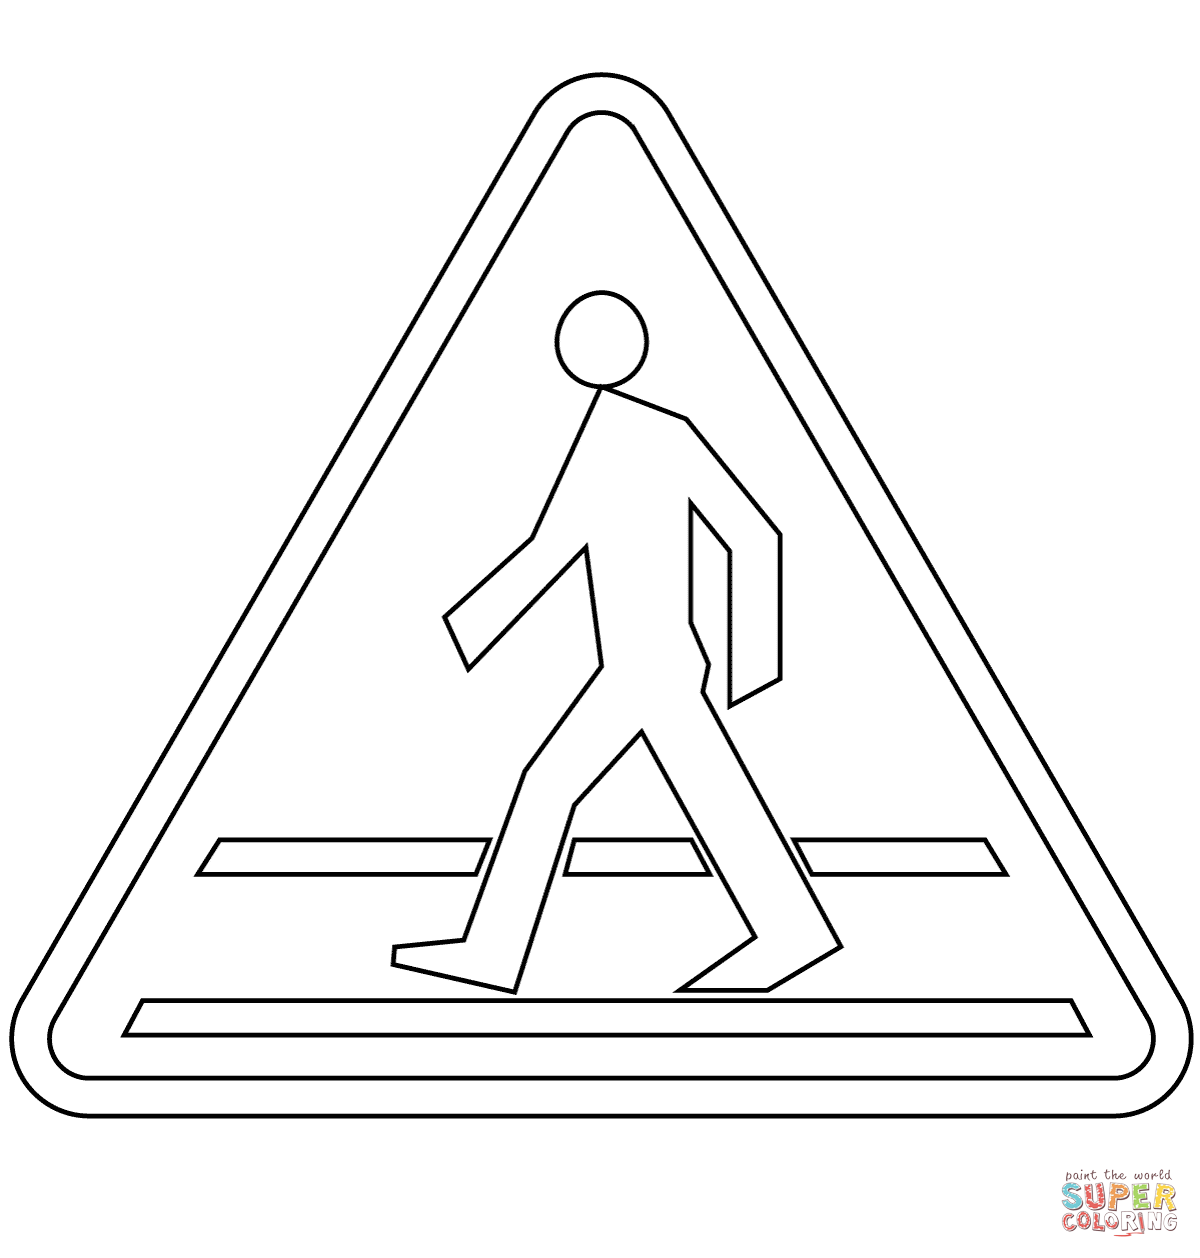 printable traffic signs coloring pages traffic signs coloring pages encouraging kids to move traffic printable pages coloring signs